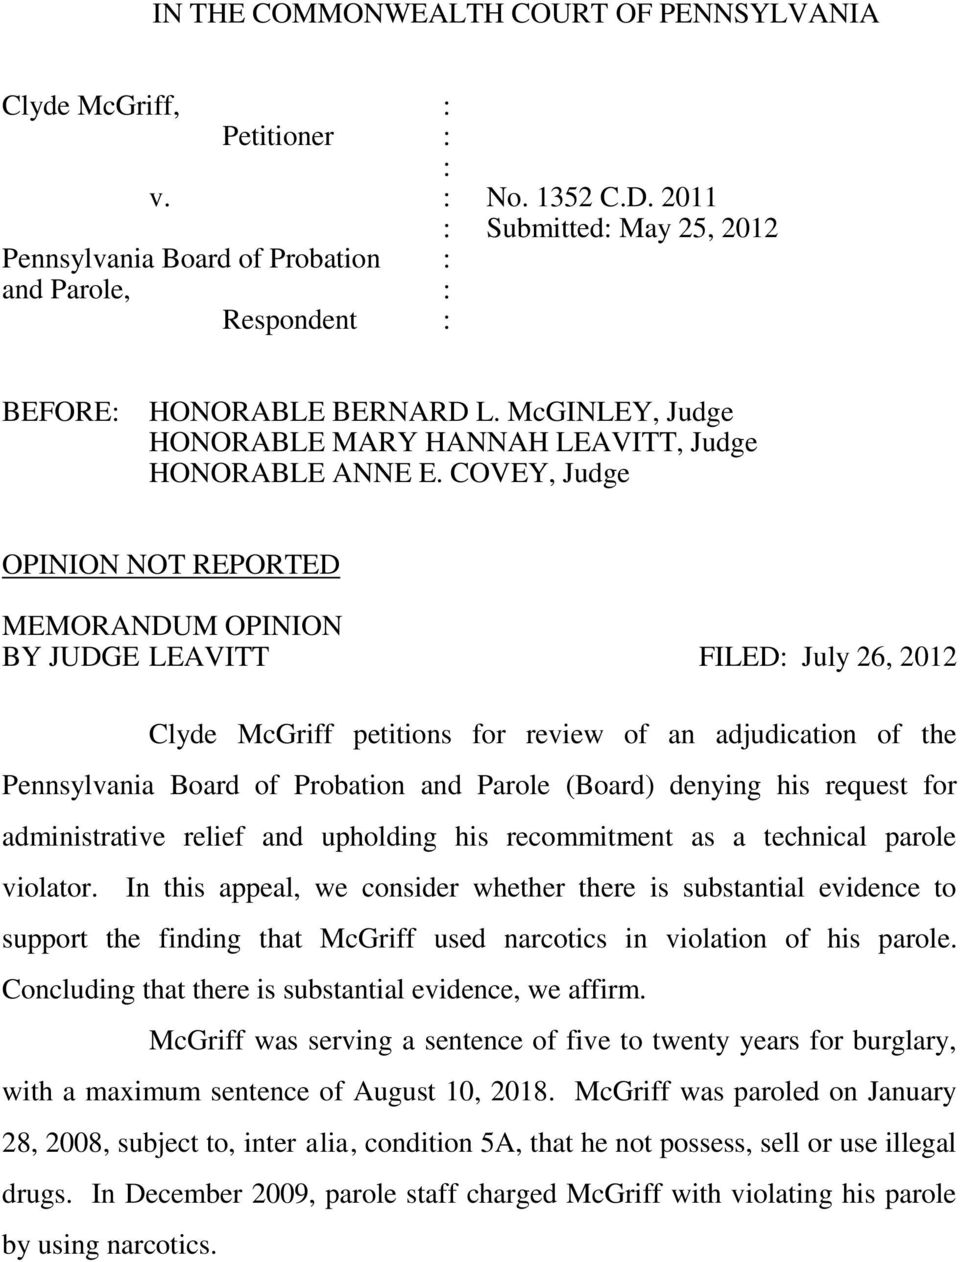 COVEY, Judge OPINION NOT REPORTED MEMORANDUM OPINION BY JUDGE LEAVITT FILED July 26, 2012 Clyde McGriff petitions for review of an adjudication of the Pennsylvania Board of Probation and Parole